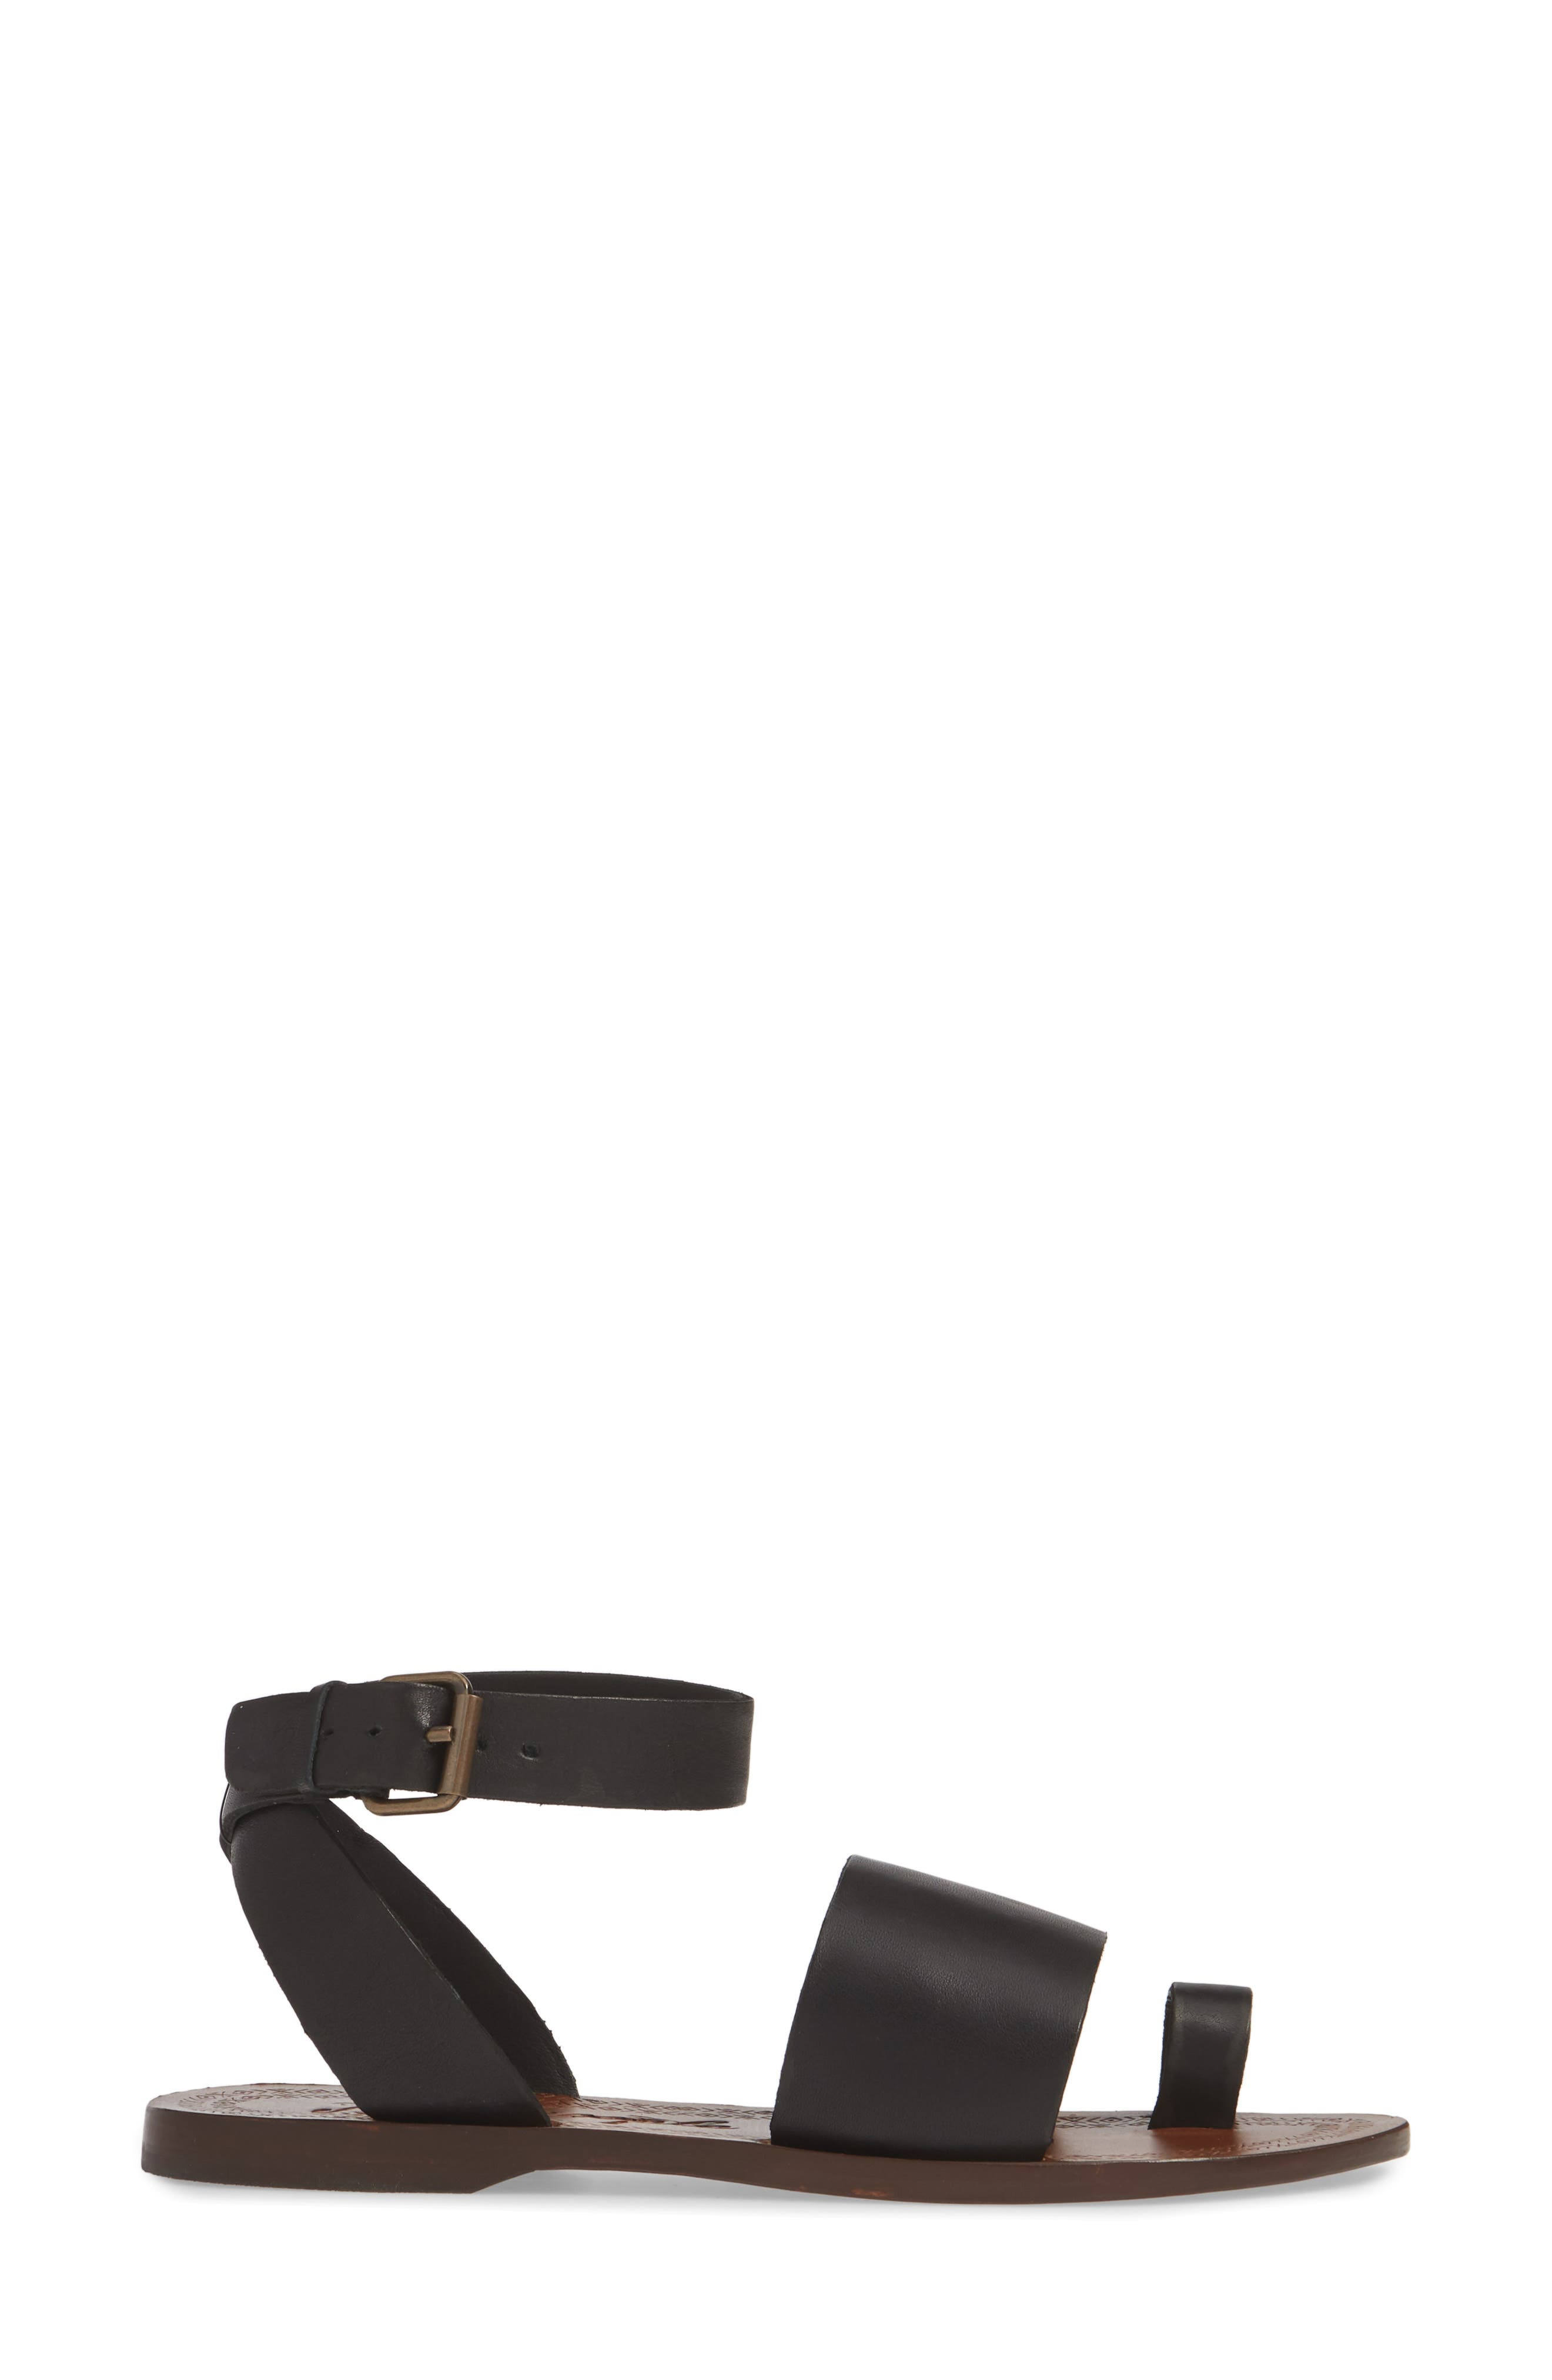 FREE PEOPLE, Torrence Ankle Wrap Sandal, Alternate thumbnail 3, color, OXFORD/ SANG